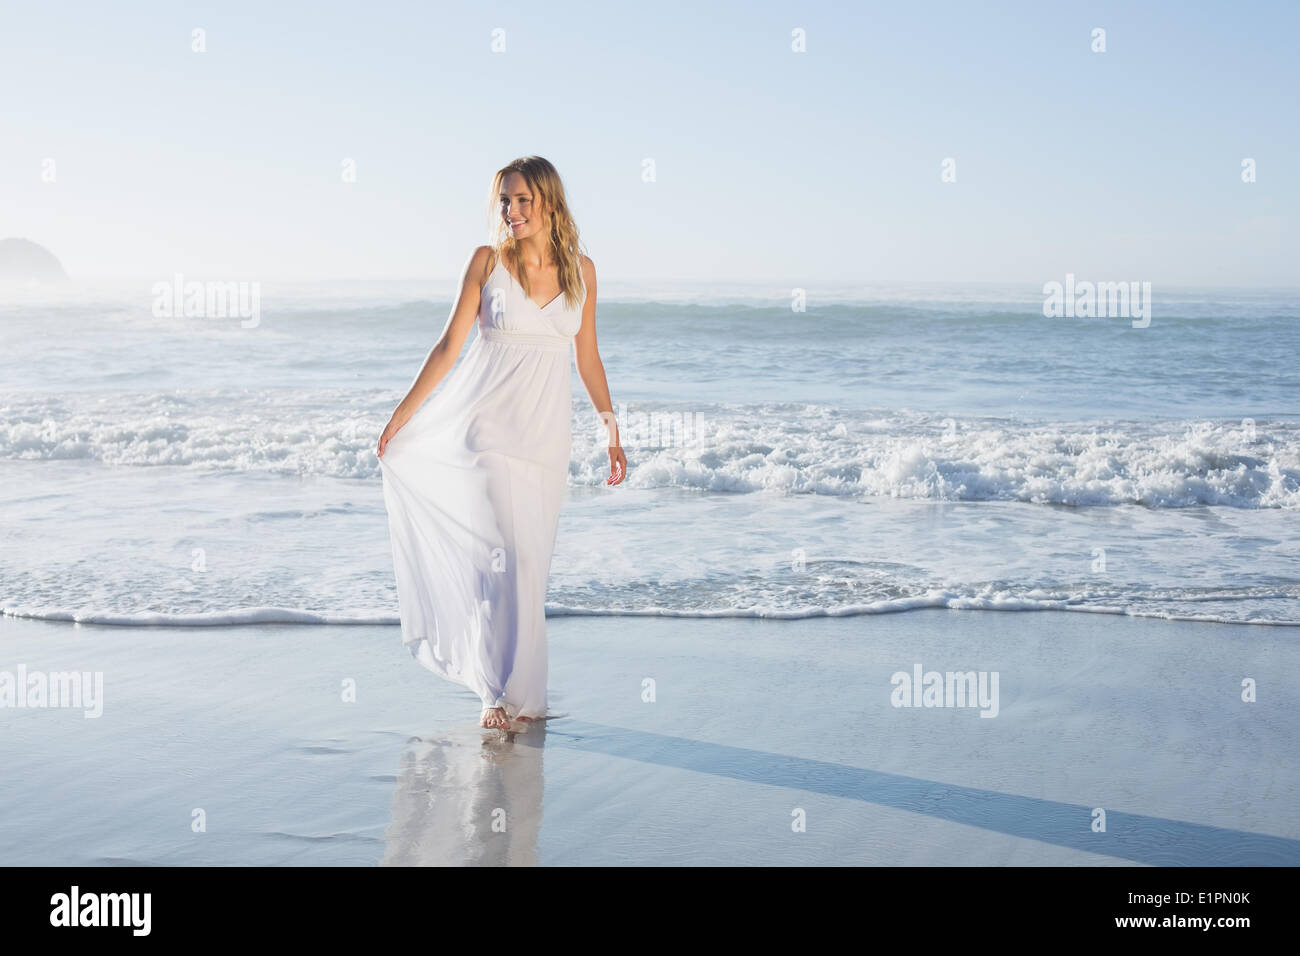 Pretty blonde at the beach in white sundress - Stock Image